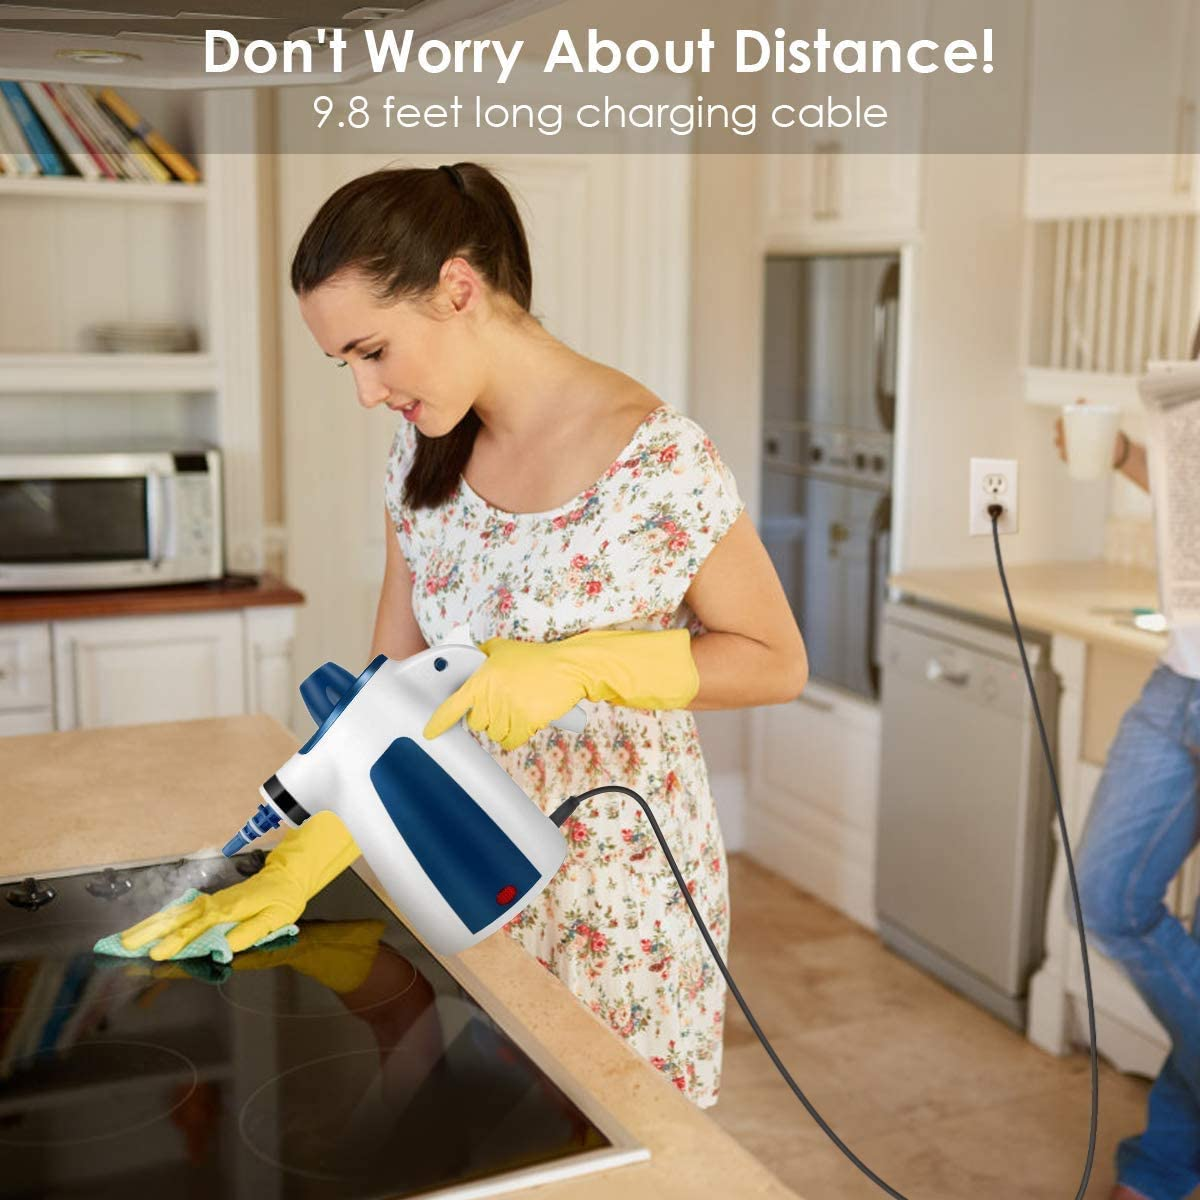 Handheld Multi Purpose Cleaners Carpet High Pressure Chemical Free Steamer with 9-Piece Accessories Grout Cleaner Steam Cleaner Carpet and Upholstery Cleaning//Home//Toilet//Bathroom//Auto//Patio//Car